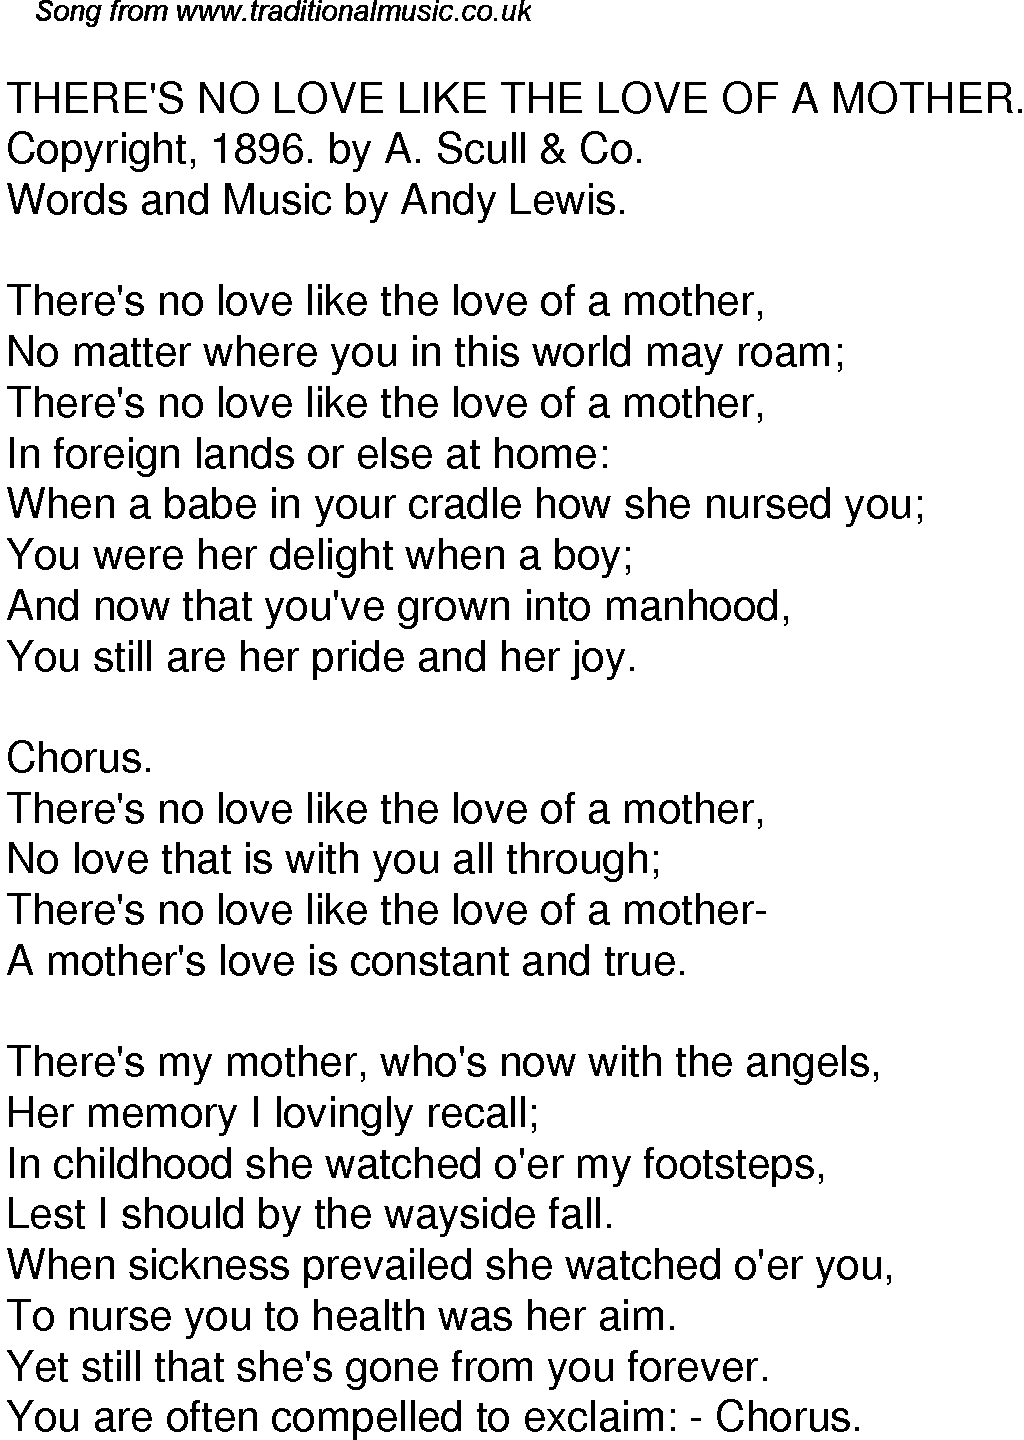 Old Time Song Lyrics For 52 Theres No Love Like The Love Of A Mother